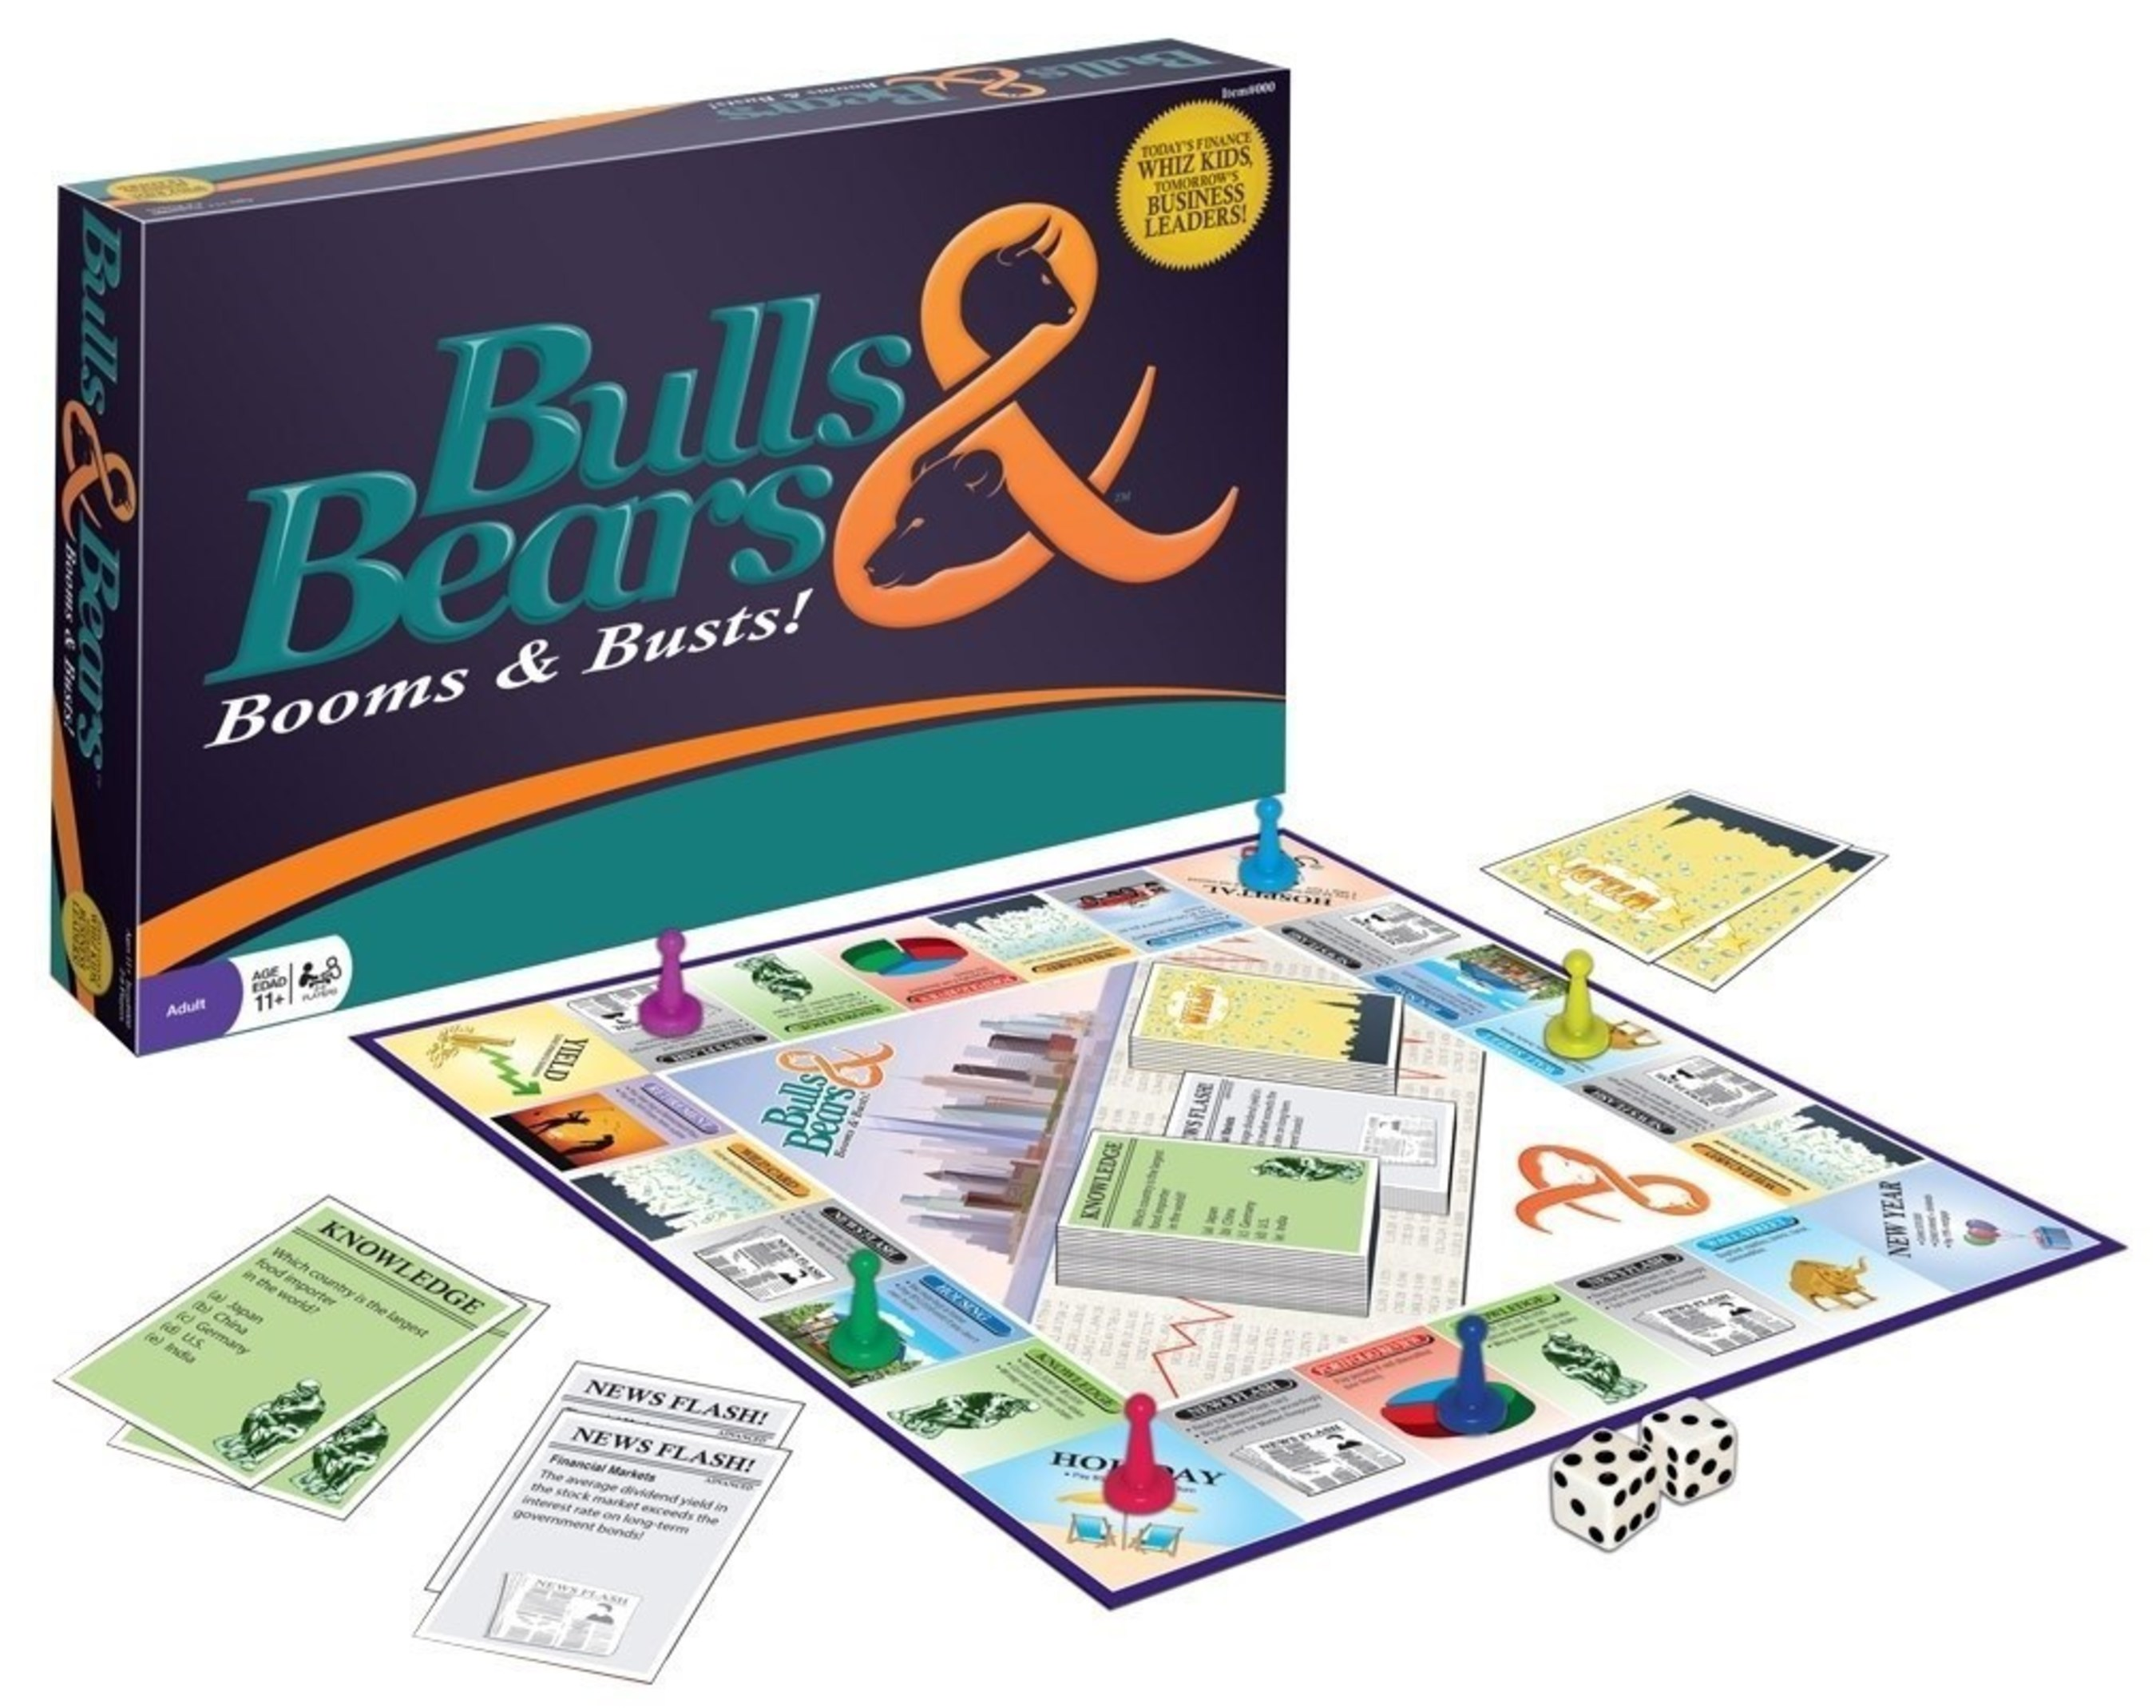 Bulls & Bears to Launch Innovative Financial Game at Toy Fair 2016